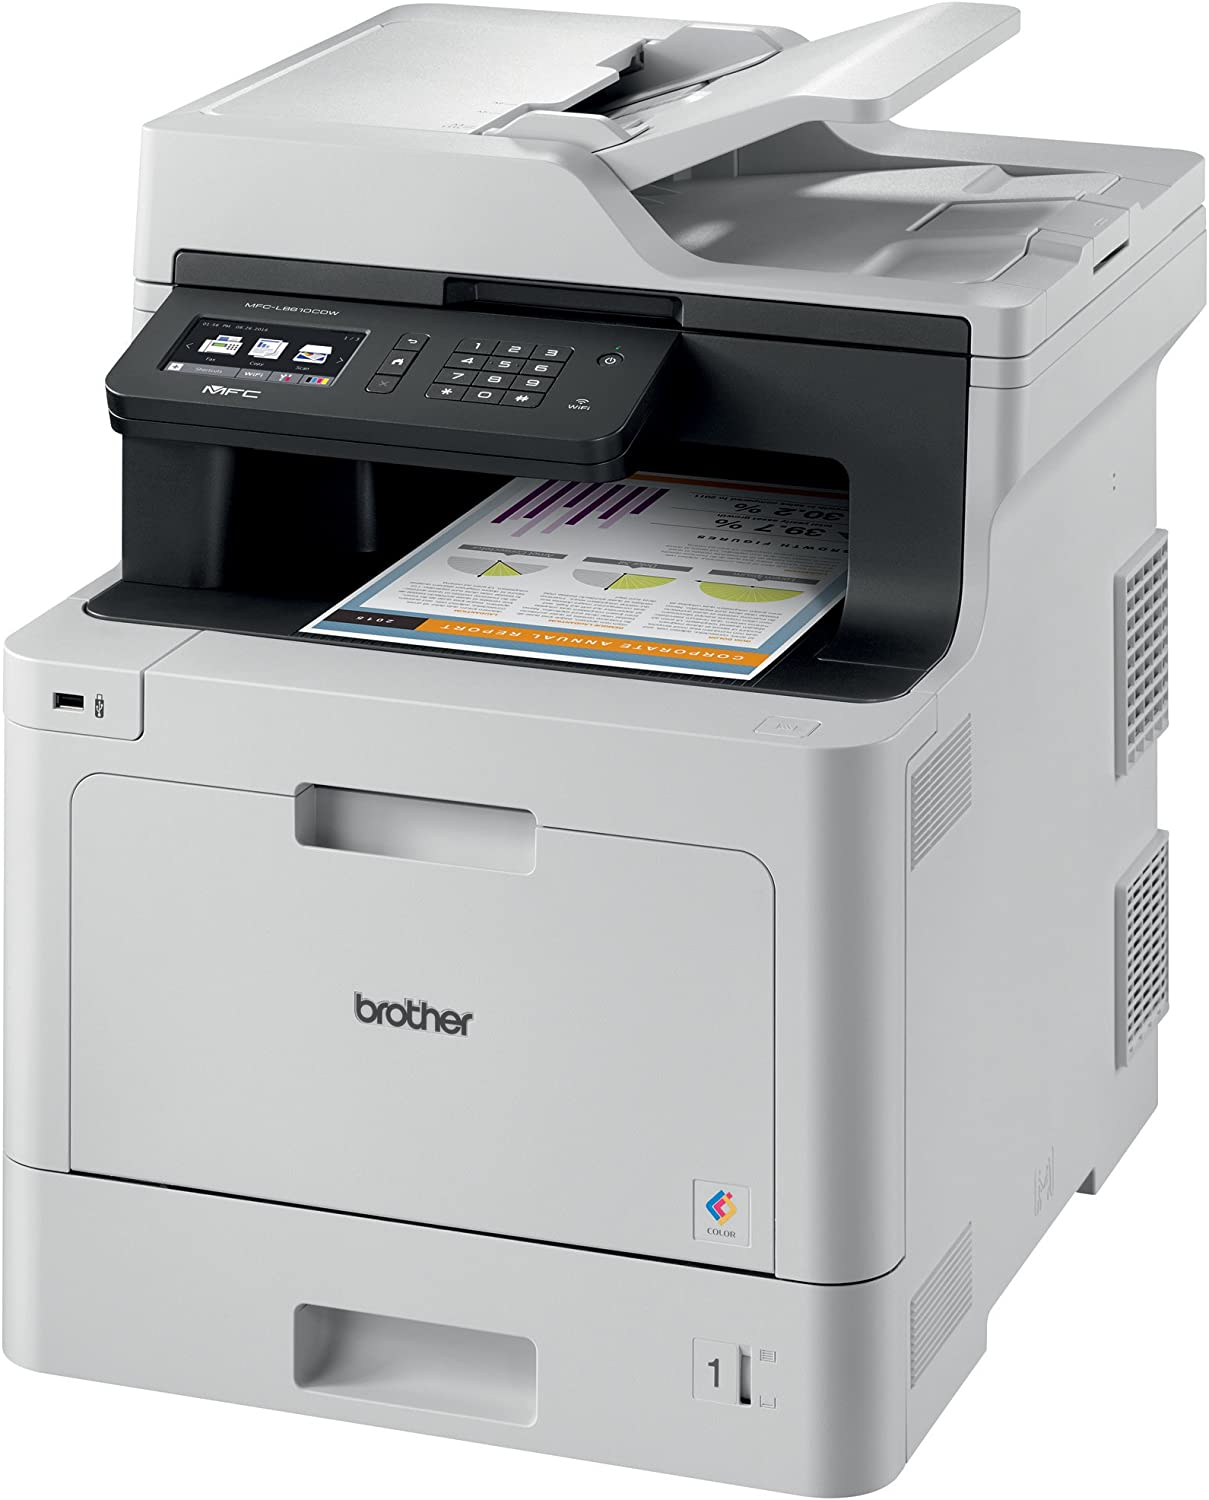 Brother Laser Printer with Duplex Printing